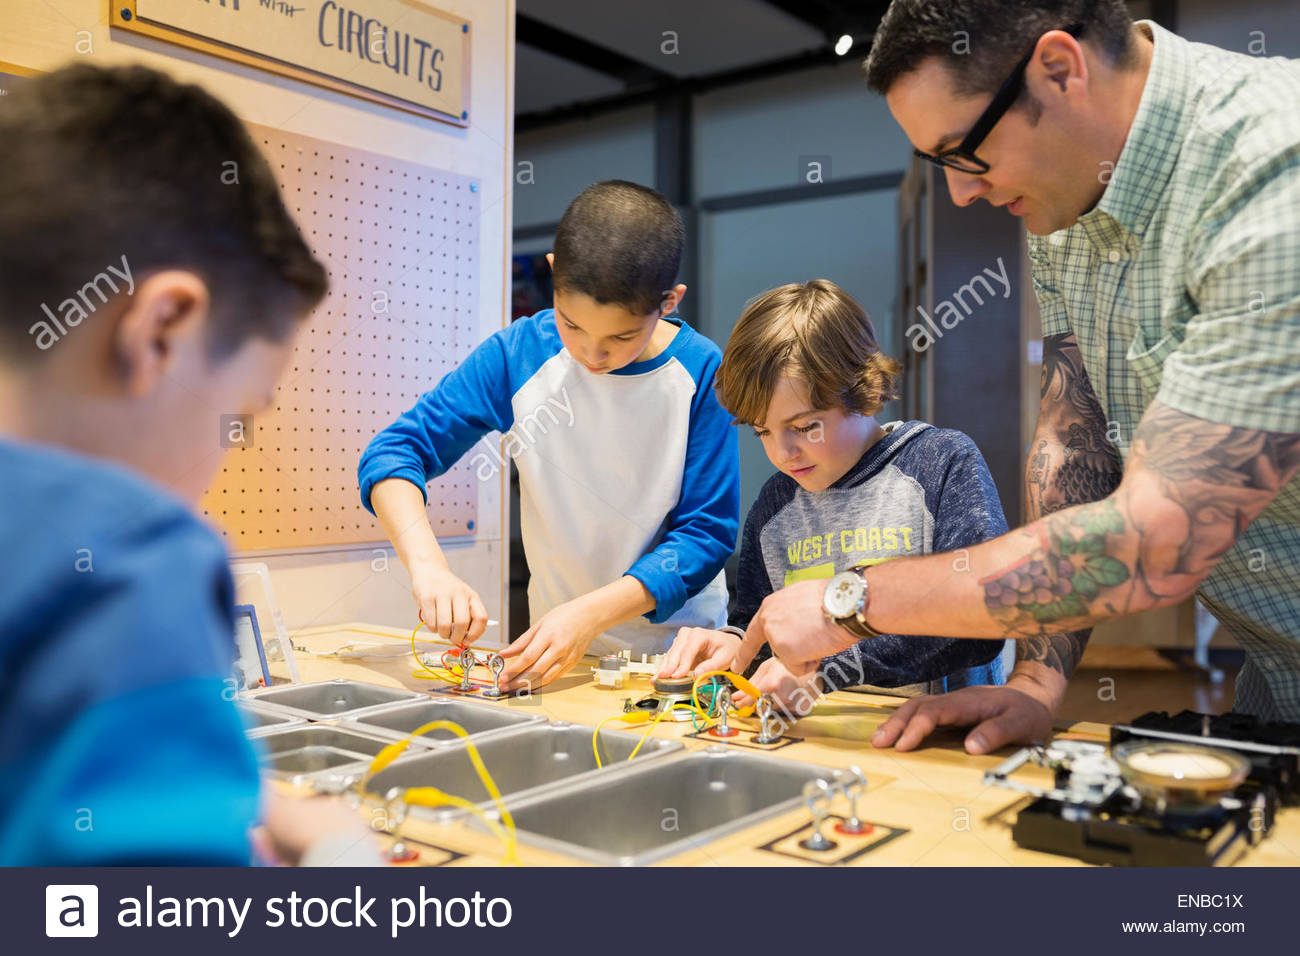 Teacher and students assembling electronic circuits science center - Stock Image